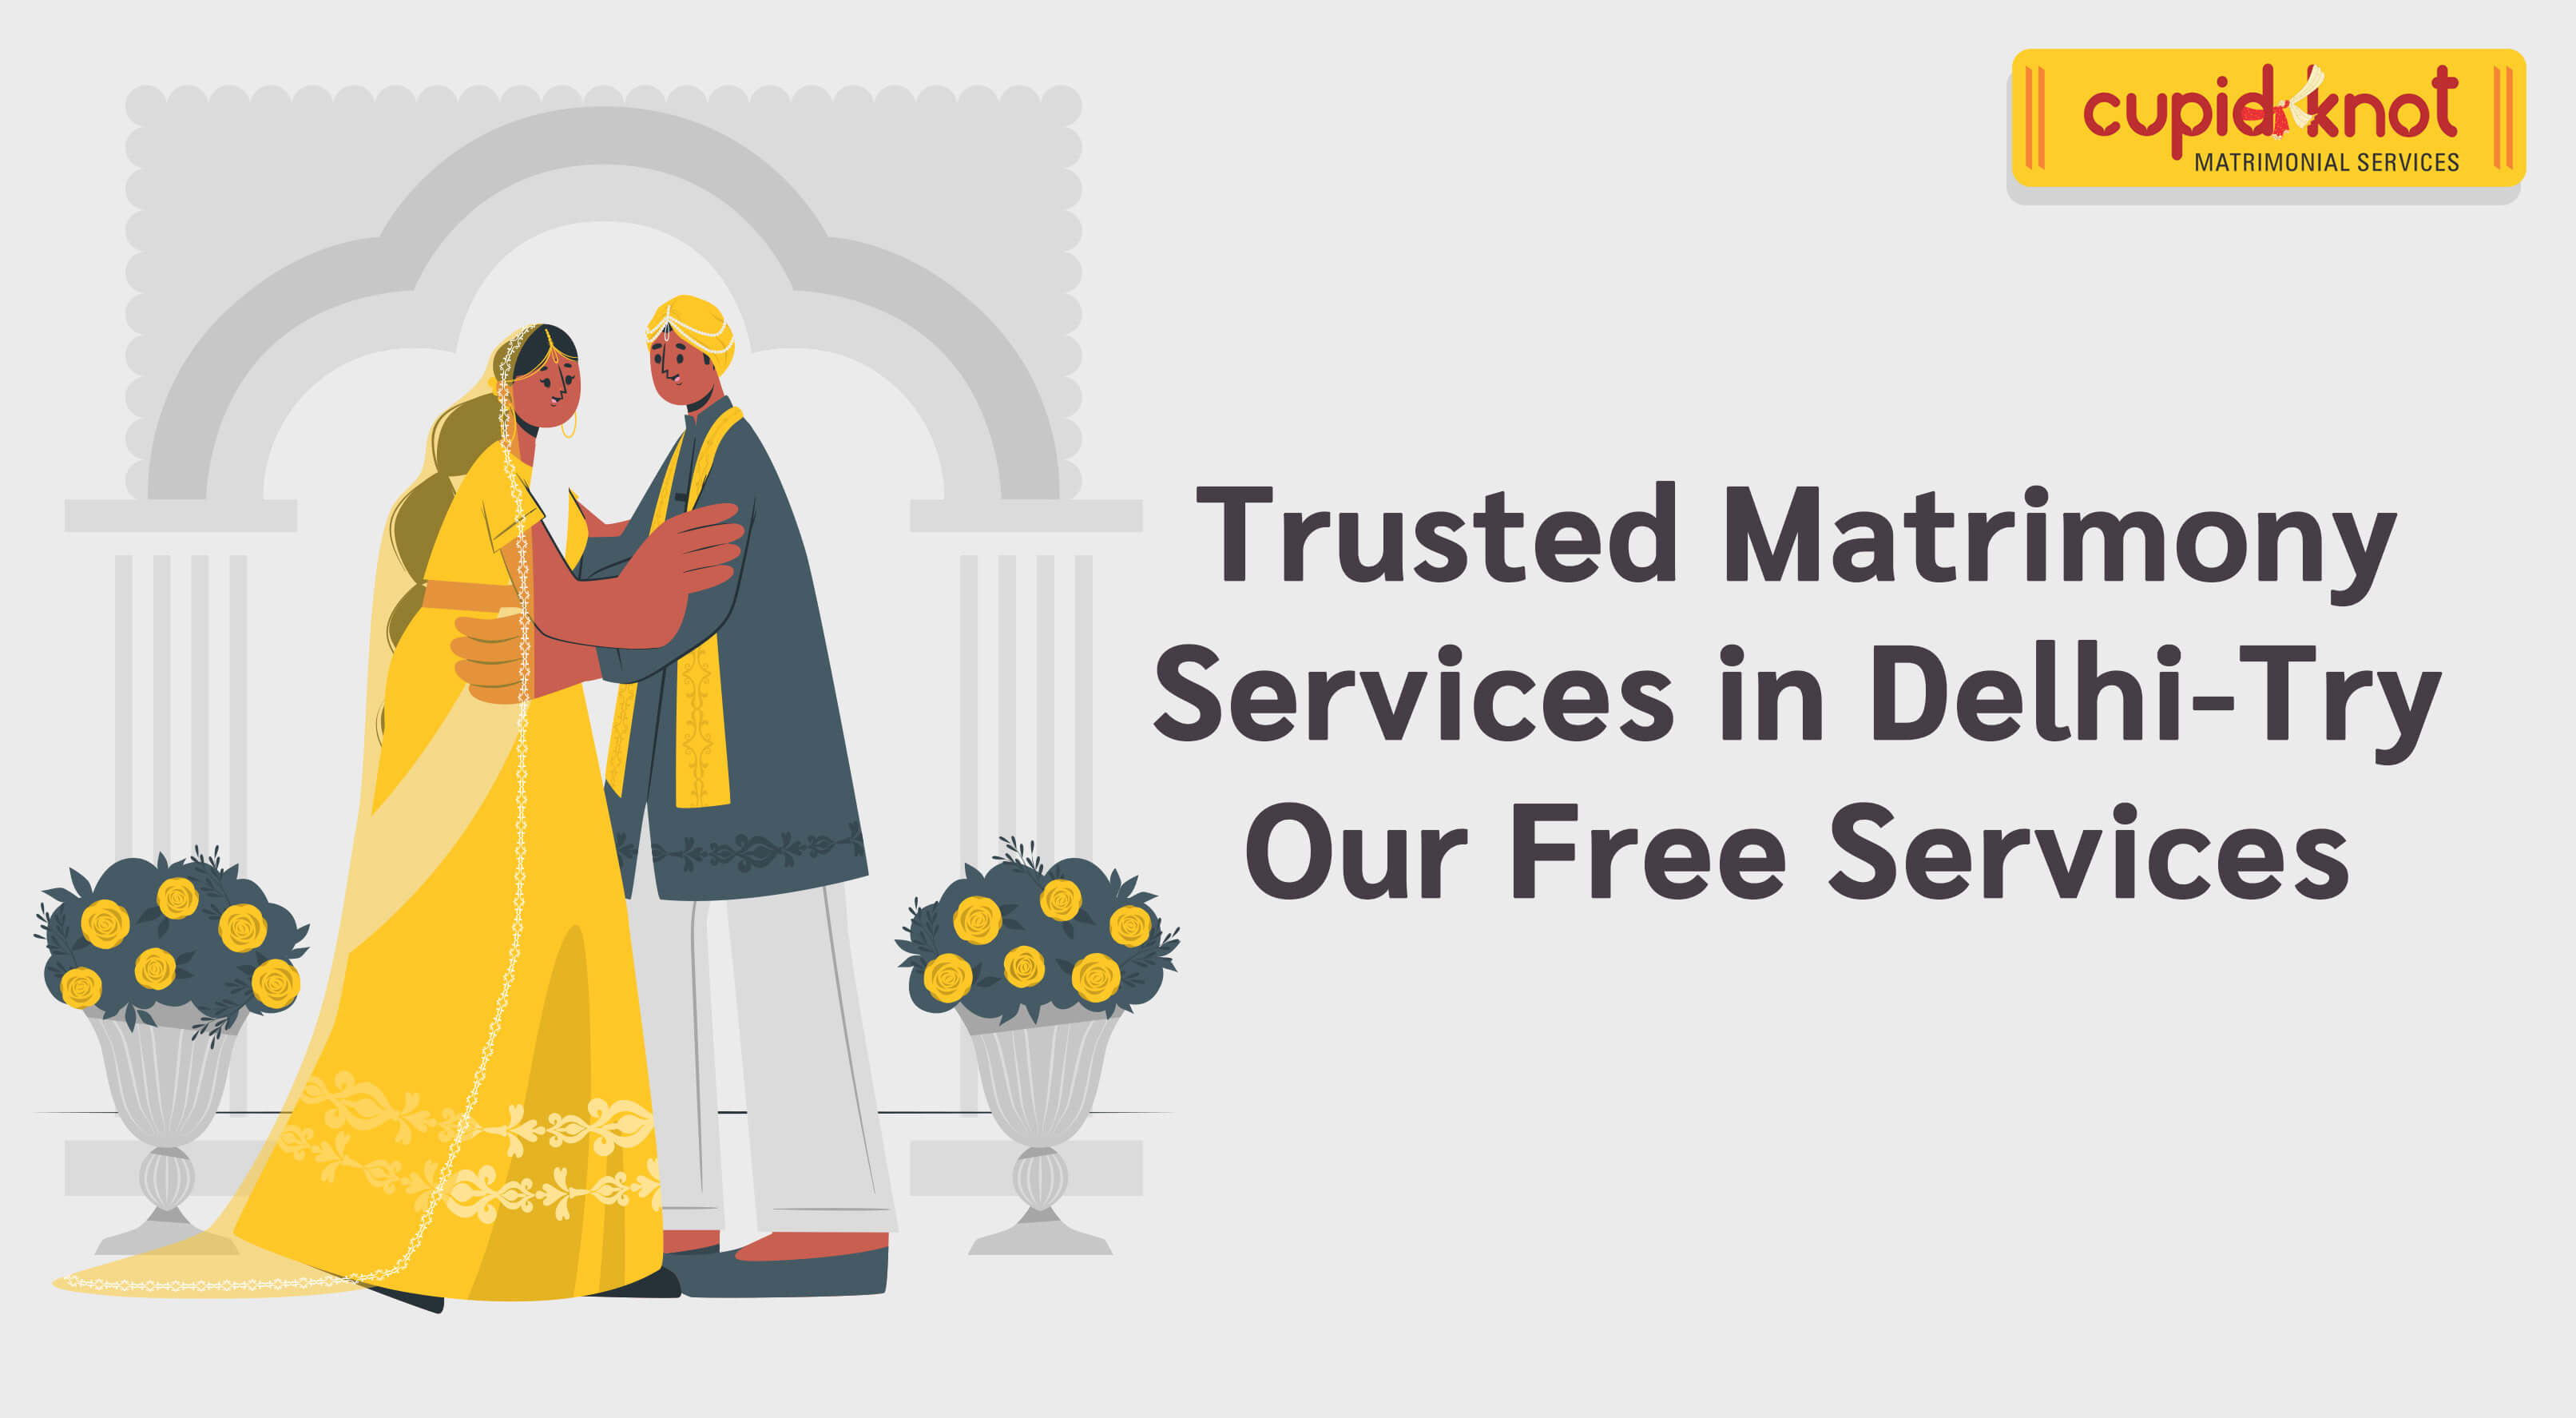 Trusted Matrimony Services in Delhi-Try Our Free Services